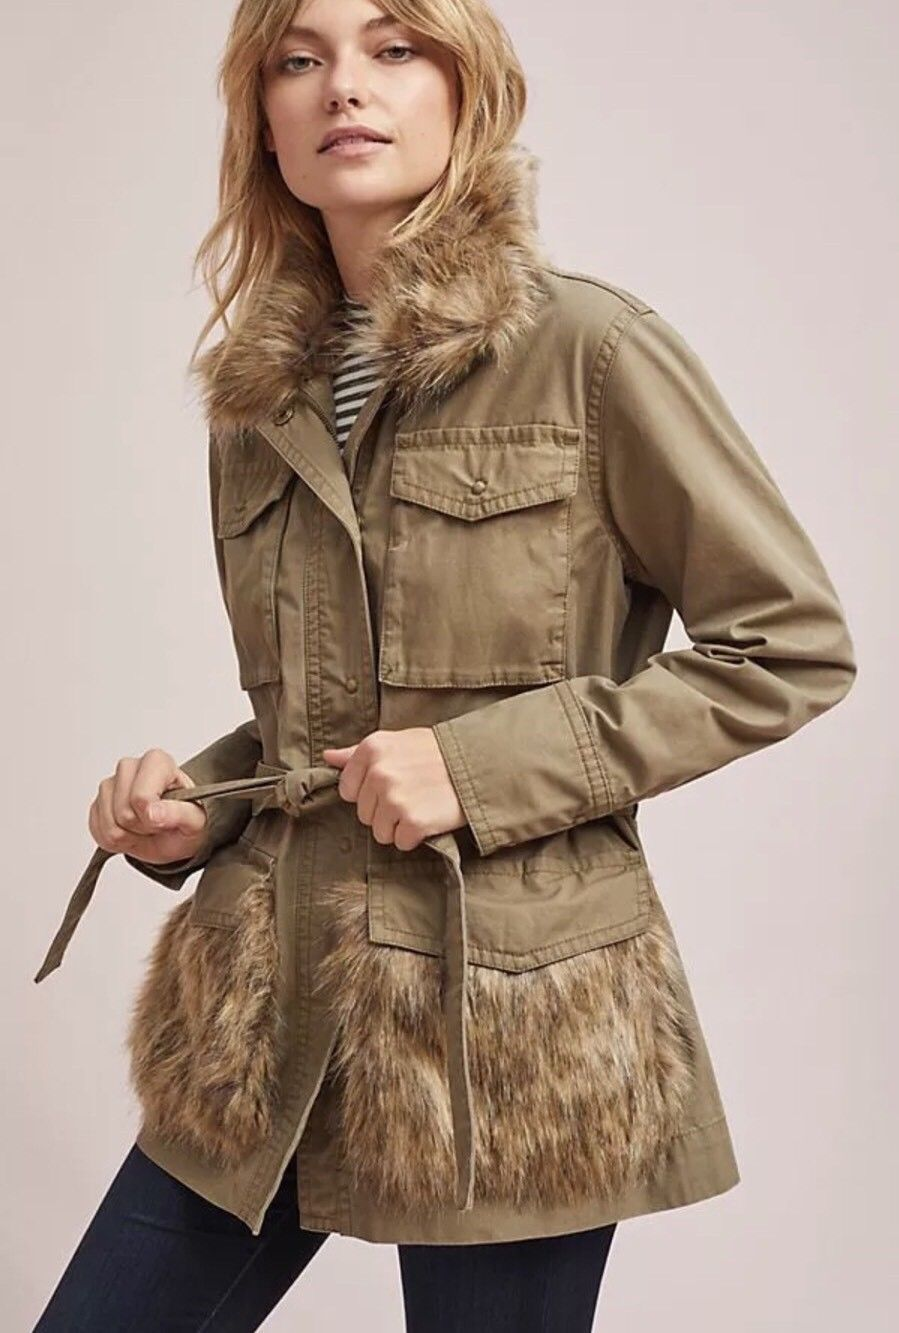 Primary image for NEW ANTHROPOLOGIE Faux Fur-Trimmed Field Parka Jacket, Size S, Retail $188